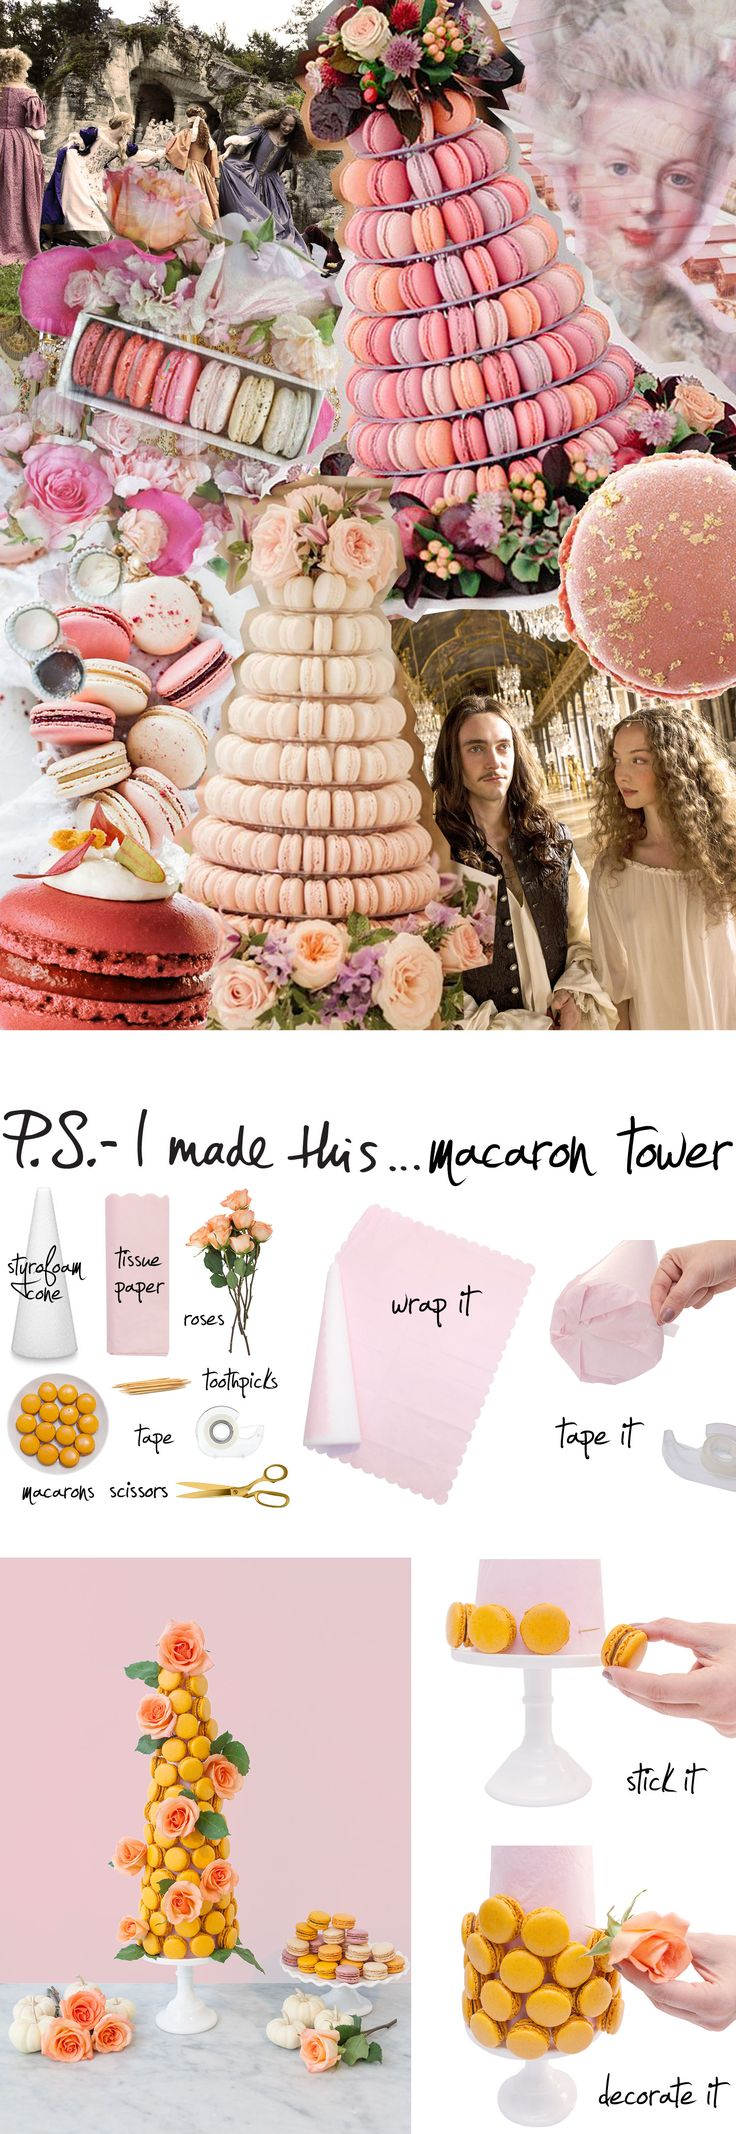 Nothing says deliciously chic more than a macaron tower. Check out this DIY to make your own tower for your next party!